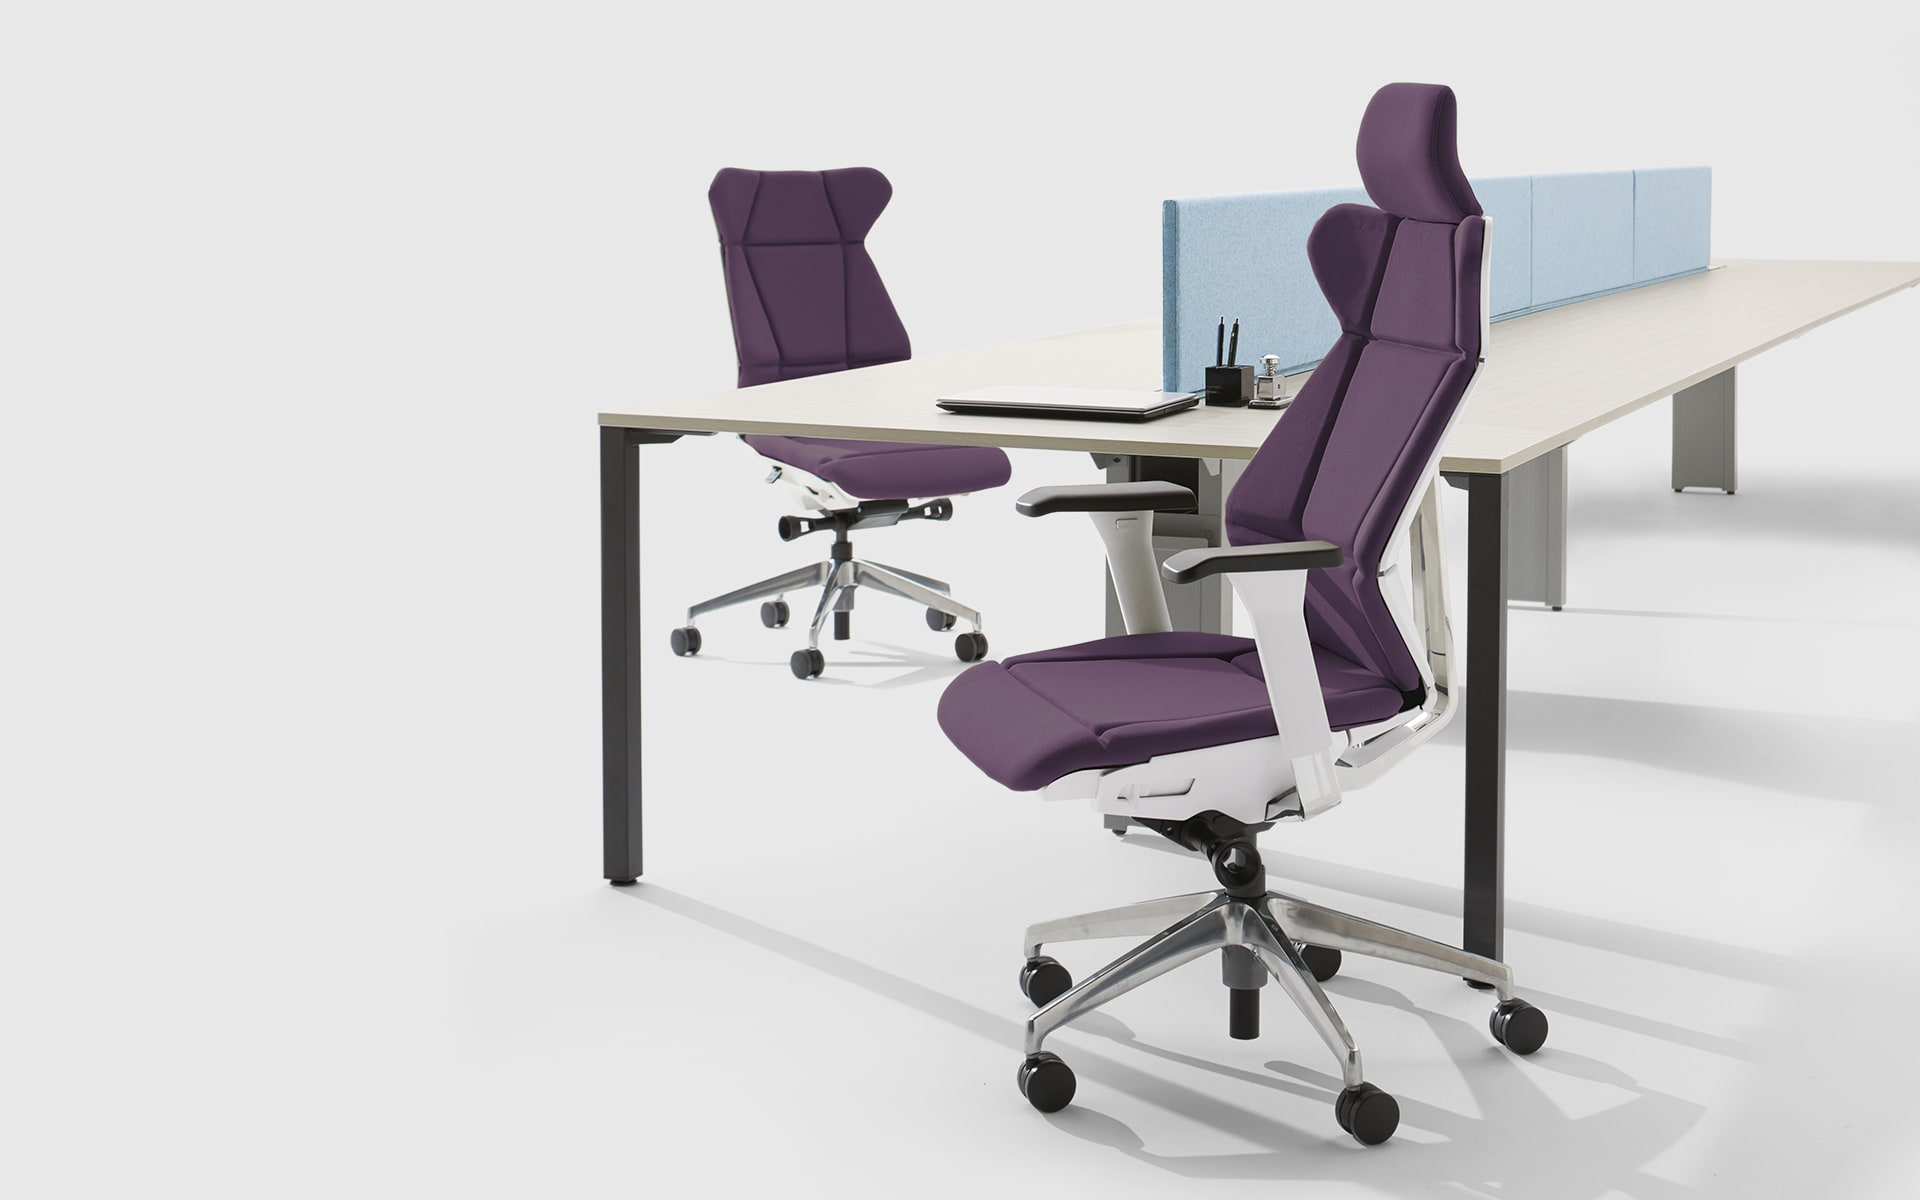 ITOKI FF office chairs by ITO Design with origami look, white backrests and purple upholstery at team workstations